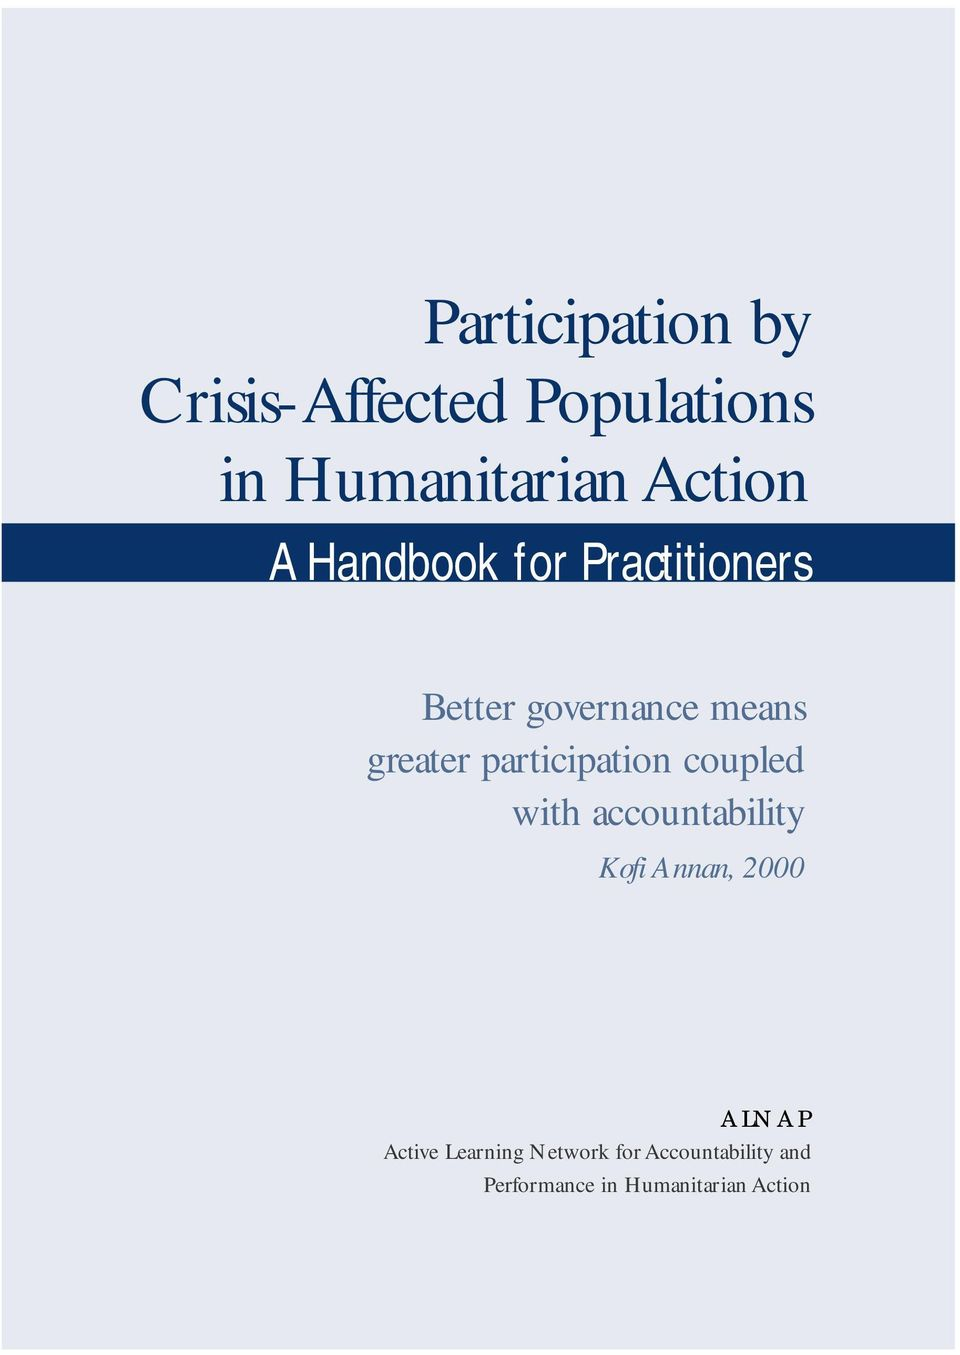 participation coupled with accountability Kofi Annan, 2000 ALNAP